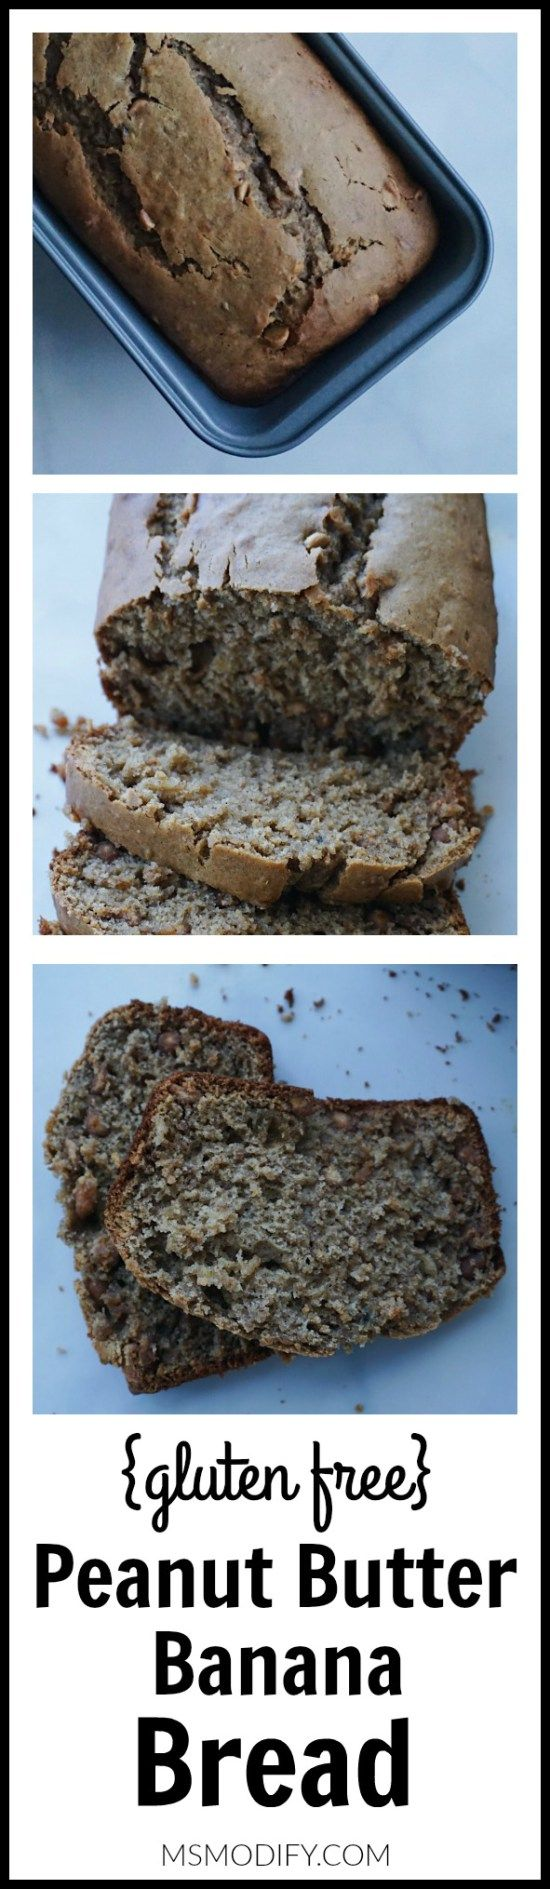 This quick and easy gluten free bread made with creamy peanut butter mixed with ripe bananas is sure to be a big hit with the entire family!